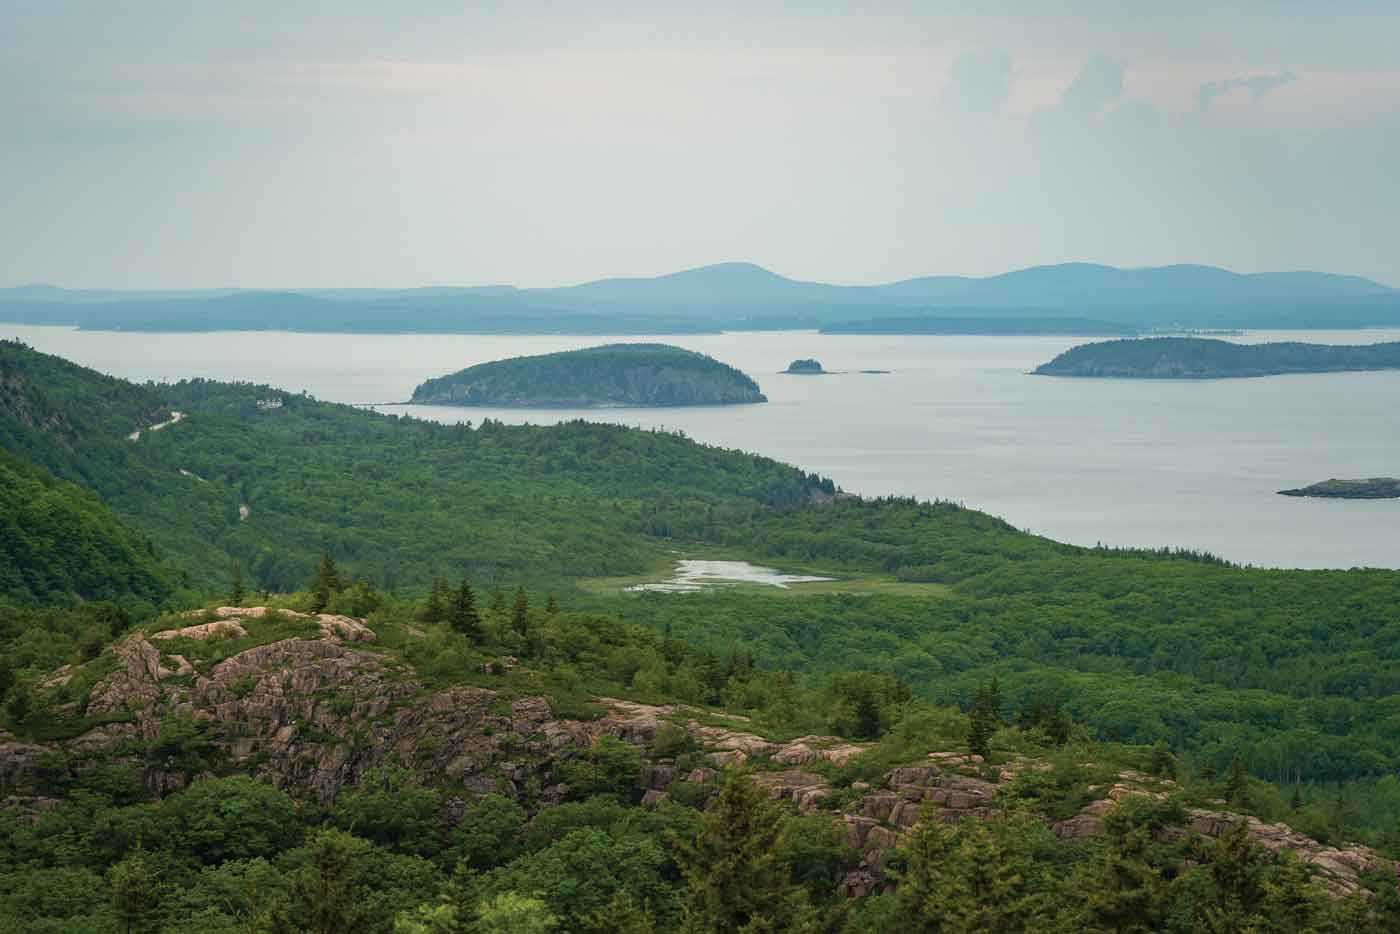 """Scenes from the Beehive Trail, where, as National Park Service materials explain, """"people challenge their bodies and minds . . . and are rewarded with stunning views over Sand Beach, Thunder Hole, and the Gulf of Maine stretching to the horizon."""""""